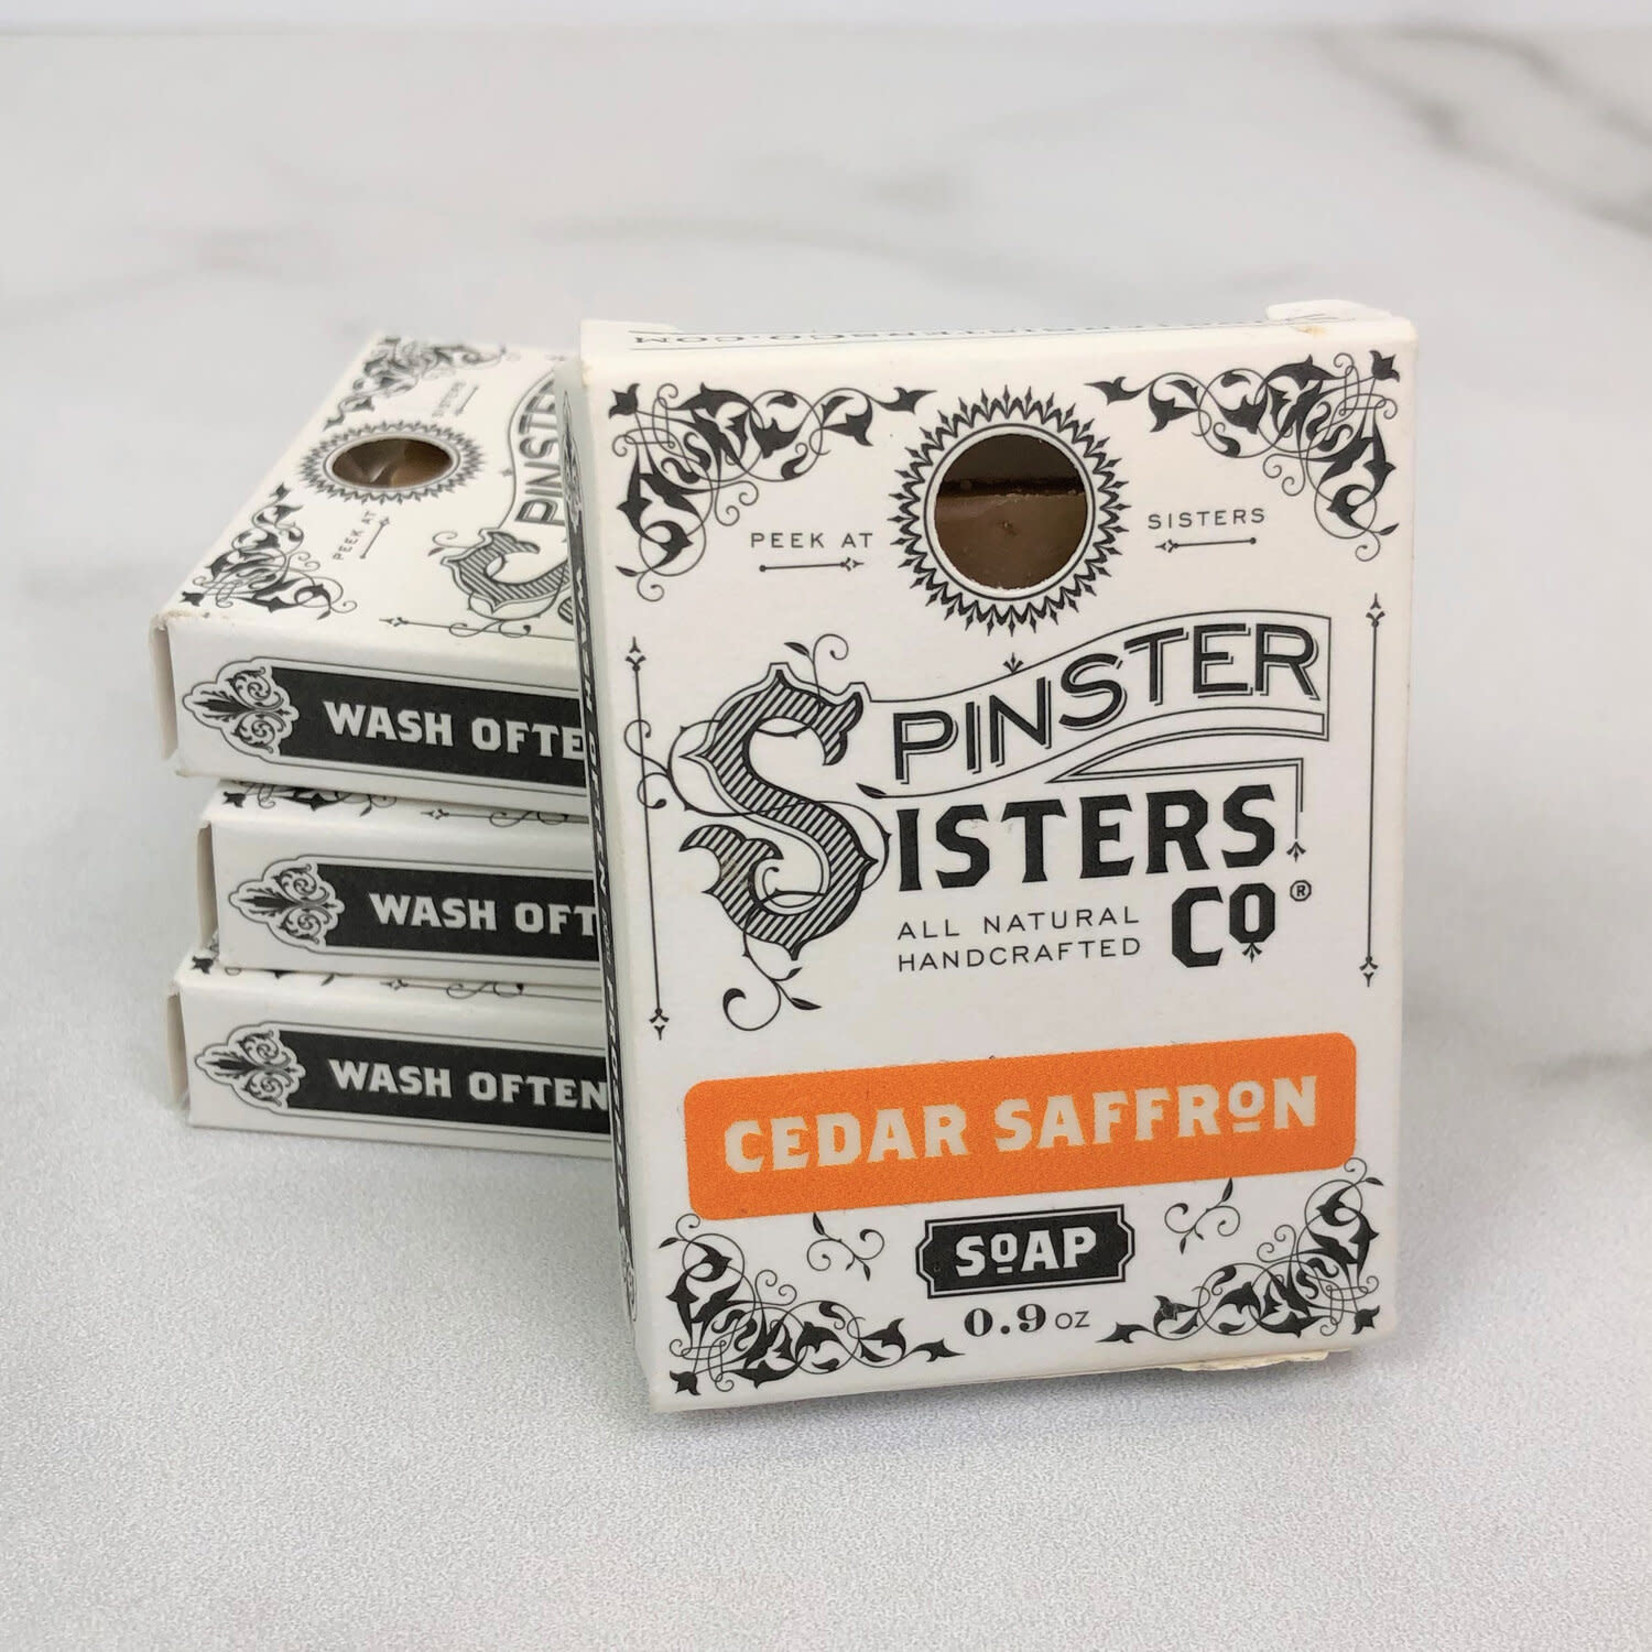 Spinster Sisters Soap Bar